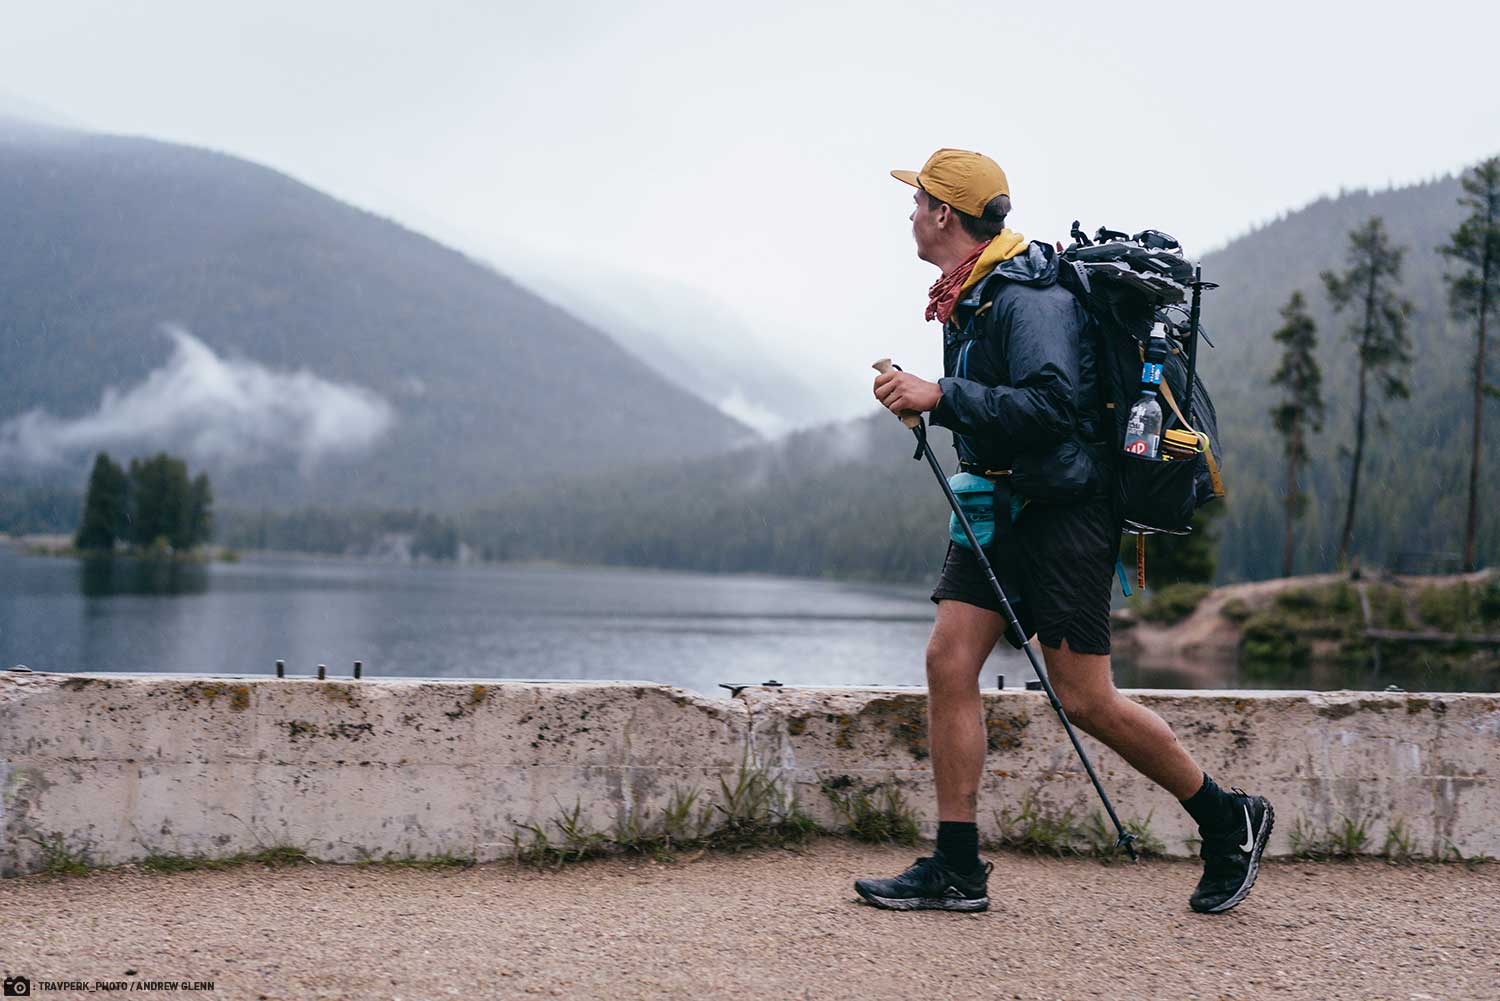 Andrew Glenn Thru Hiking with a Sawyer Squeeze Water Filter Visible in his Backpack